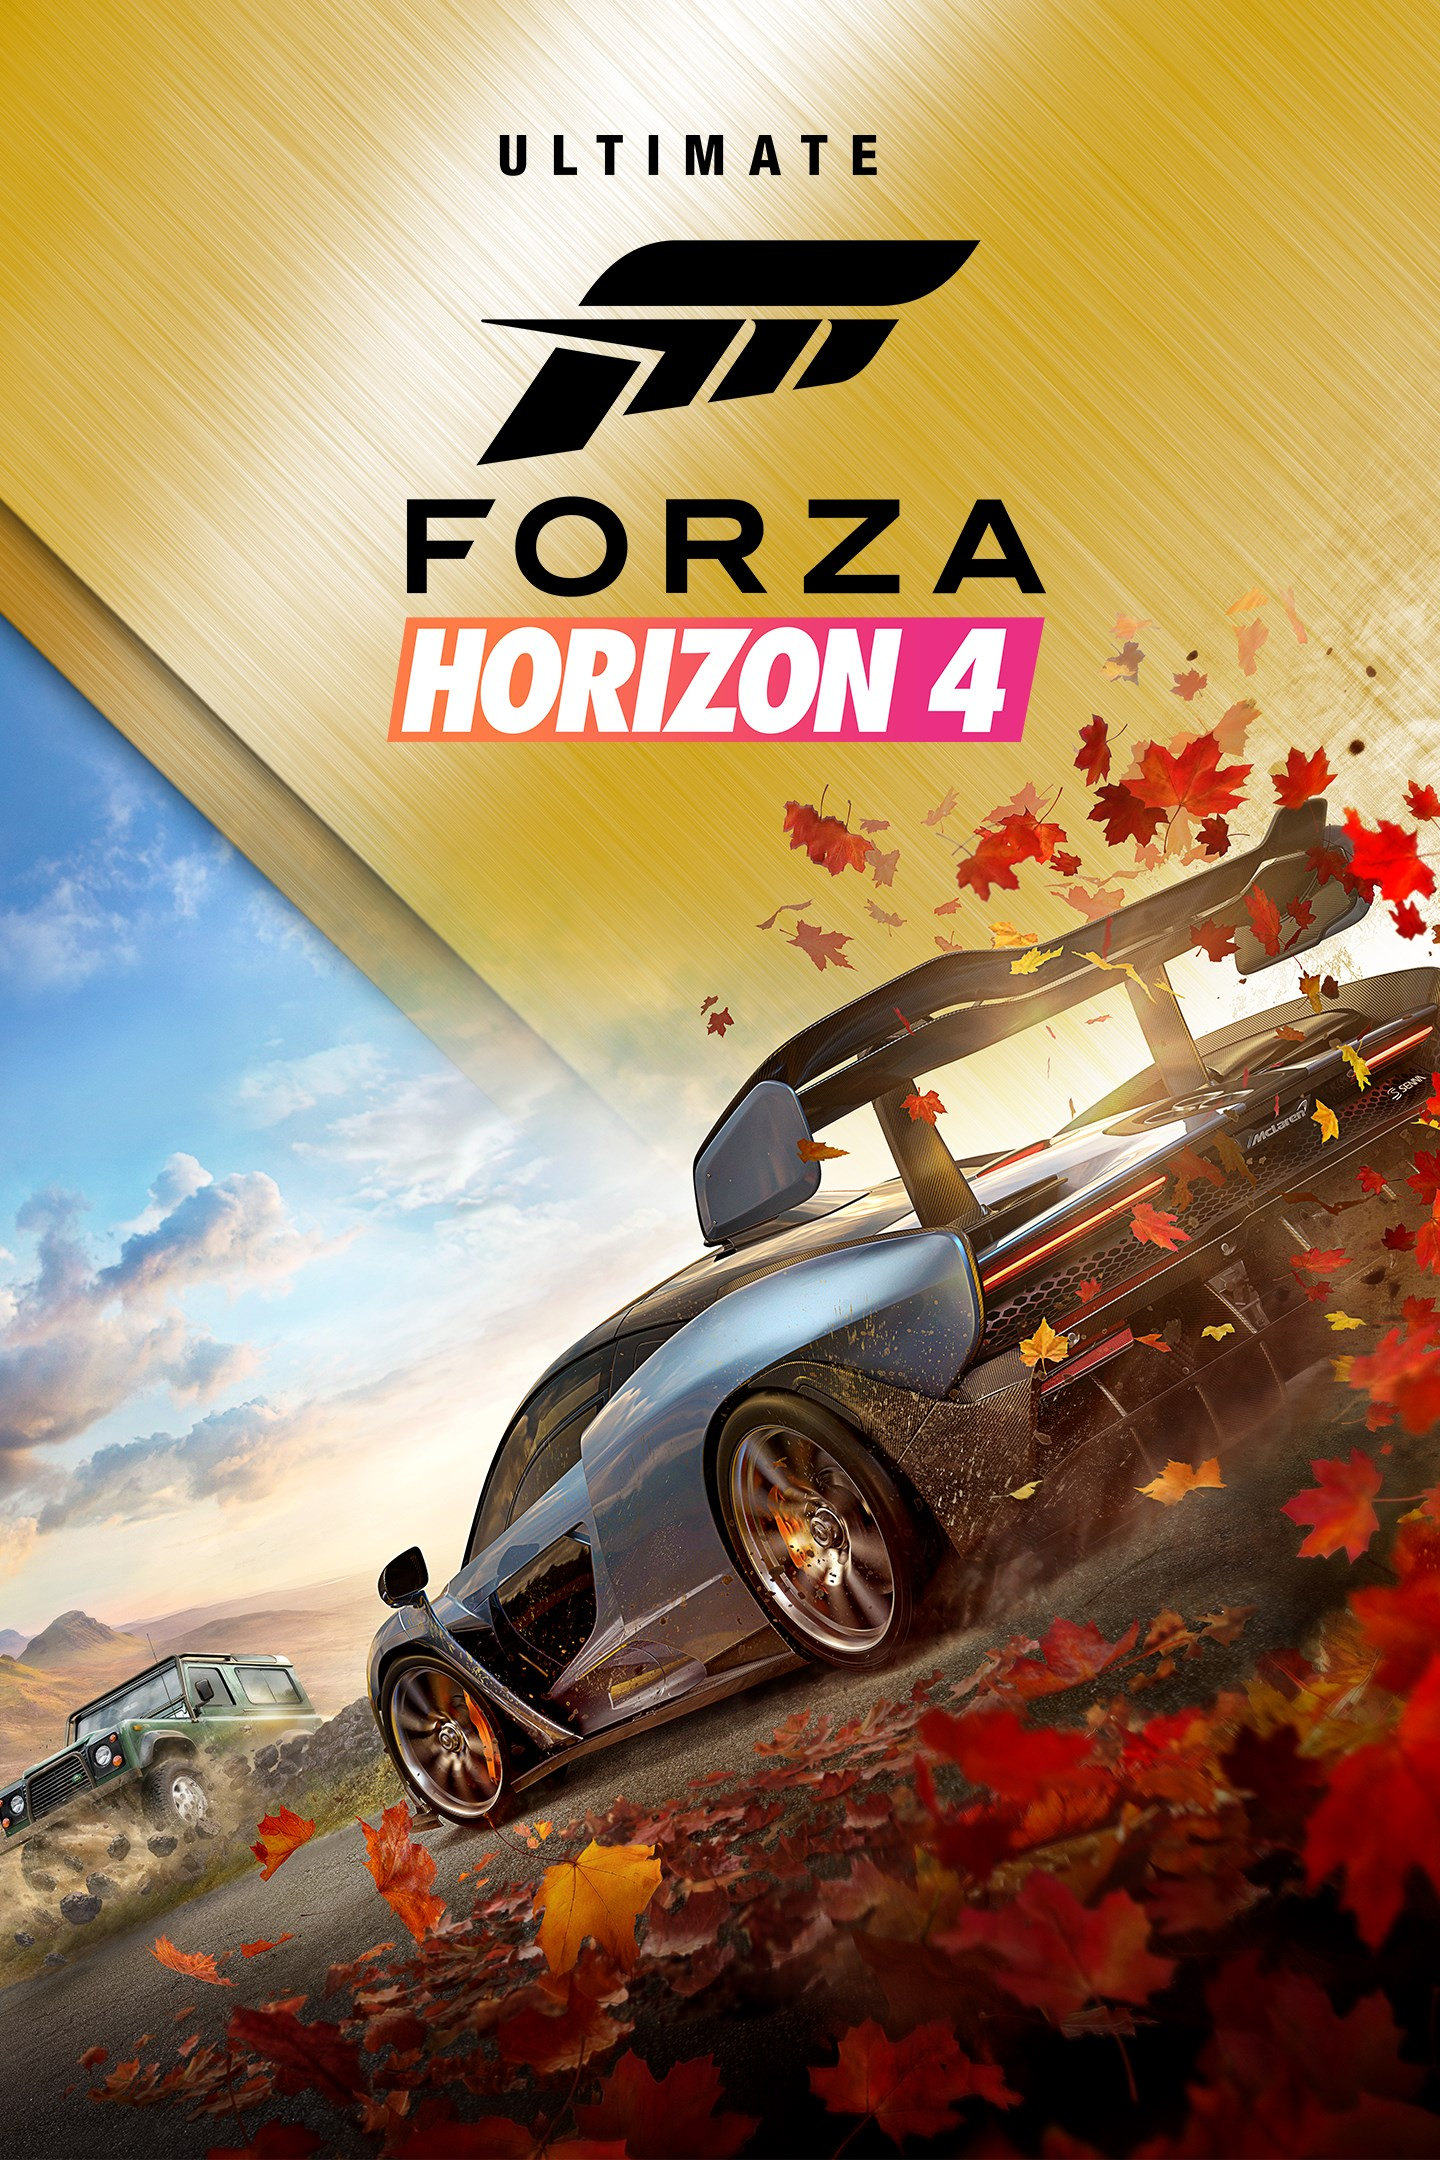 Forza Horizon 4/Ultimate Add-Ons Bundle